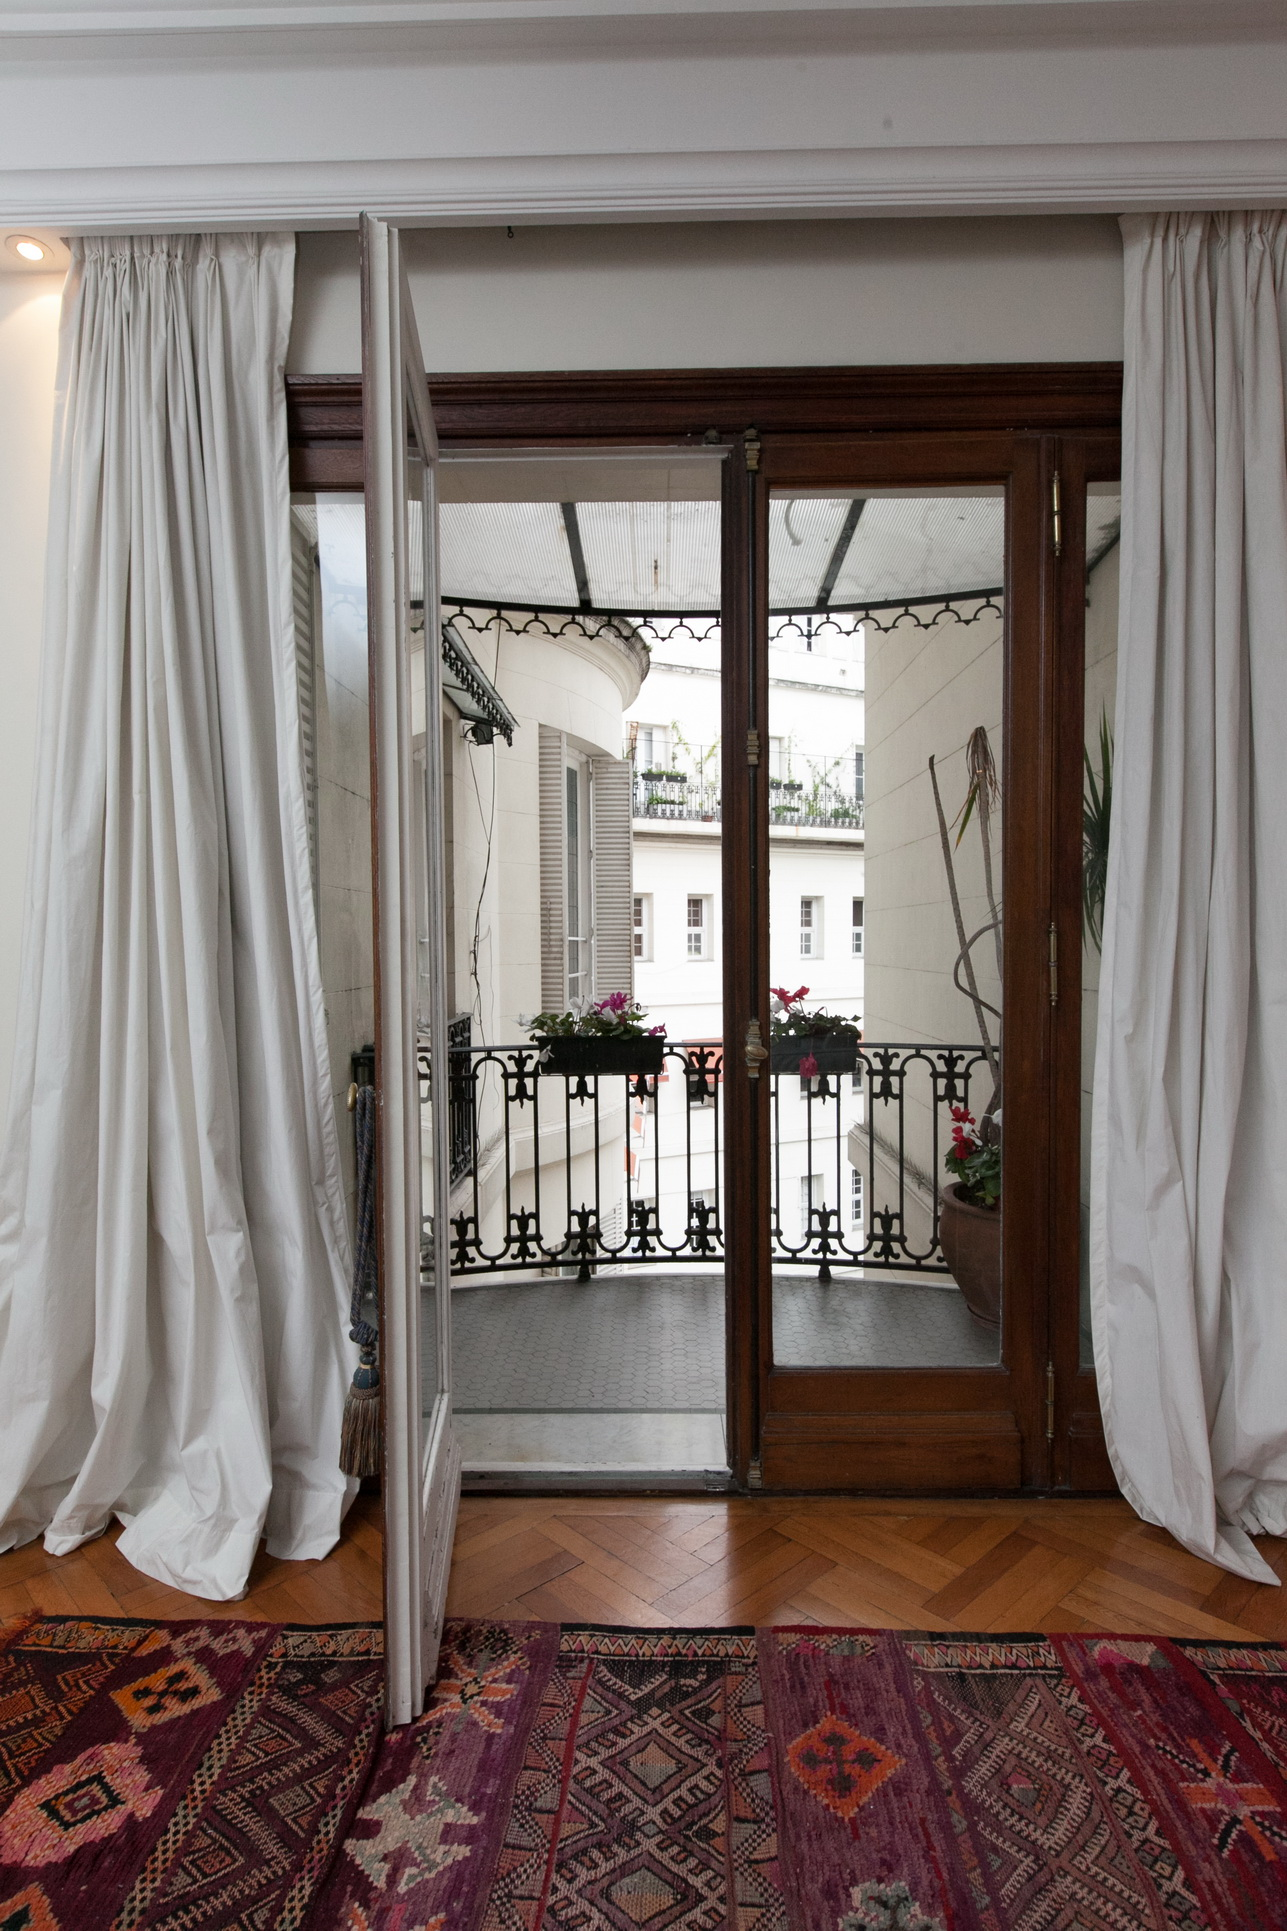 Exceptional French Apartment In Recoleta A Luxury Residence Apartment For Sale In Recoleta Ciudad De Buenos Aires Buenos Aires Christie S International Real Estate